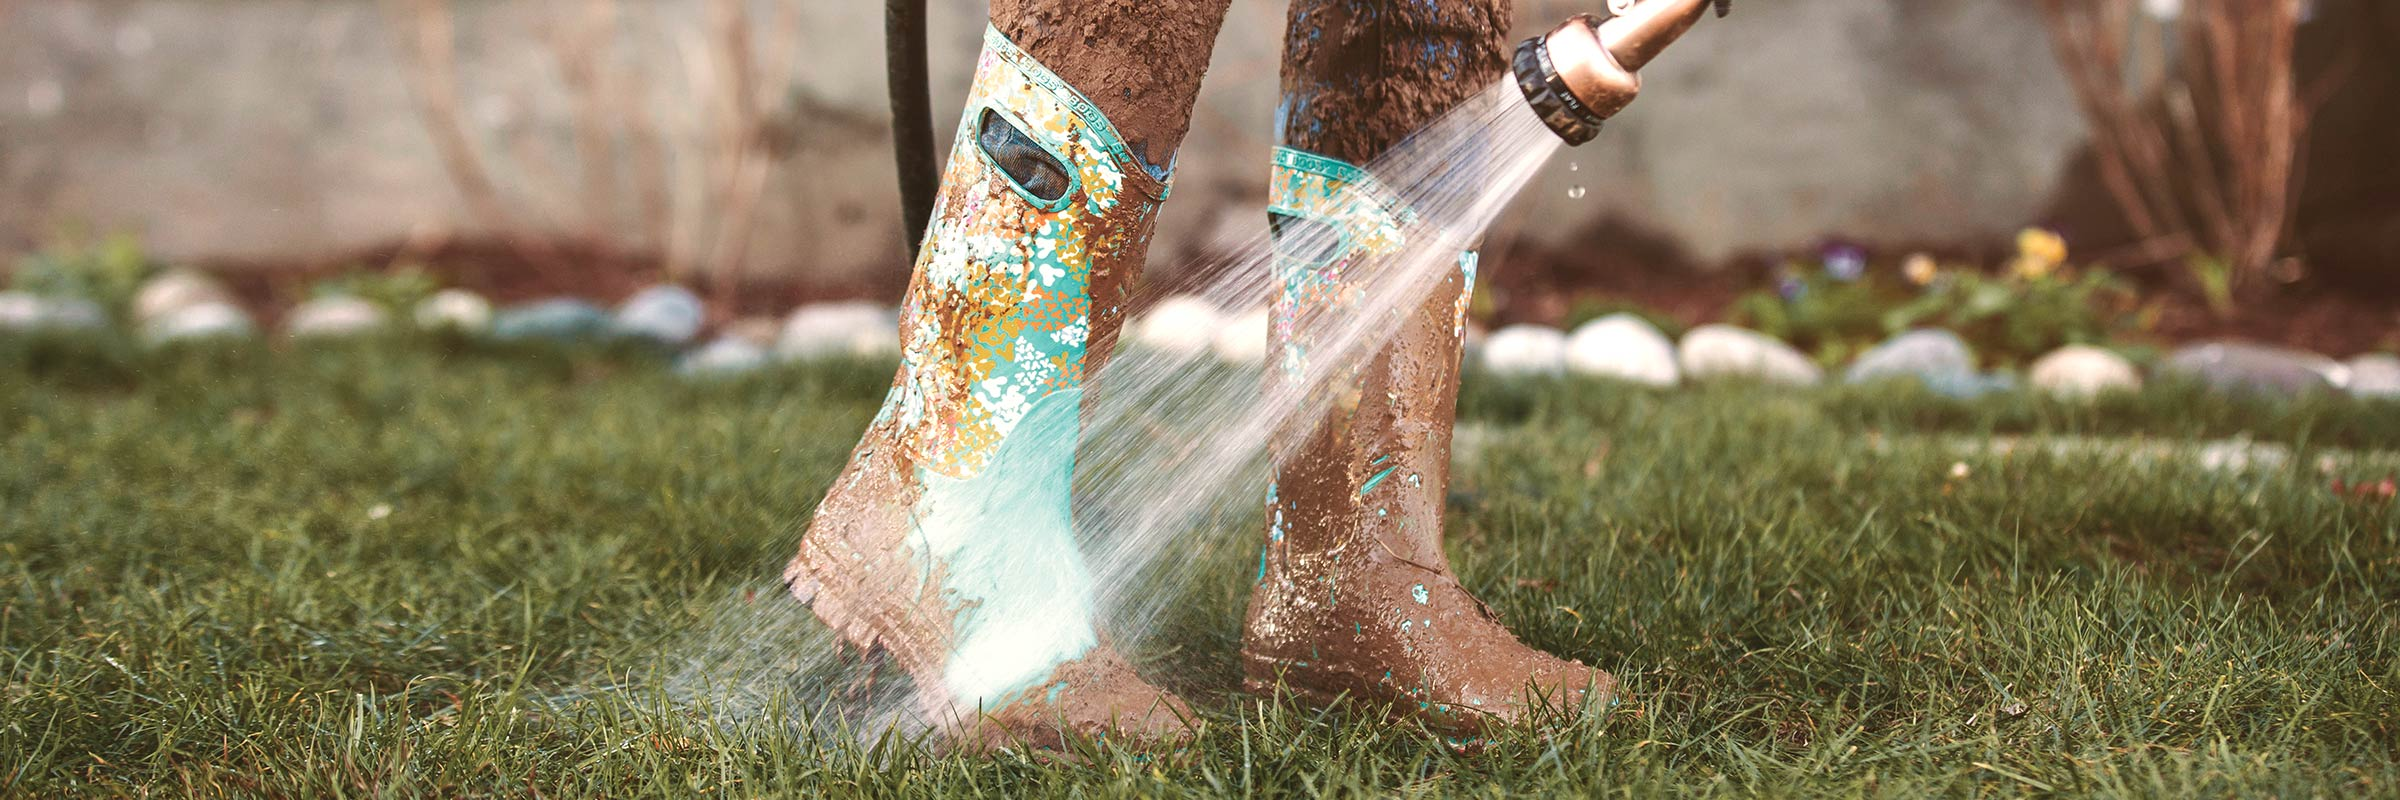 ltitude-sports-Best-Rain-Boots-Spring-2018-Bogs-4